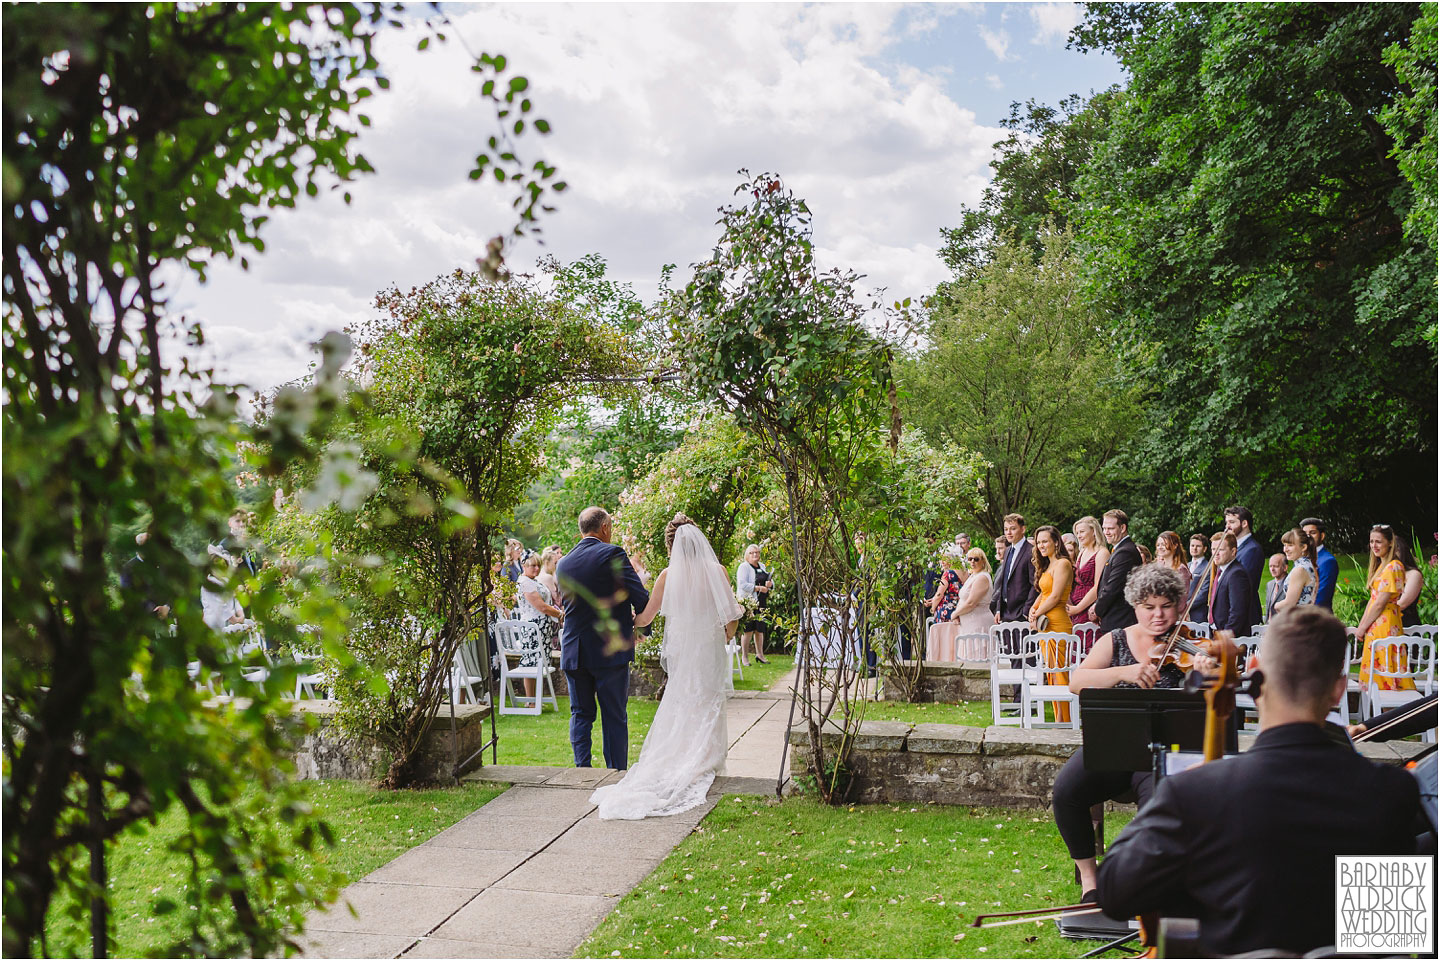 Outdoor Wedding ceremony at Wood Hall in Yorkshire